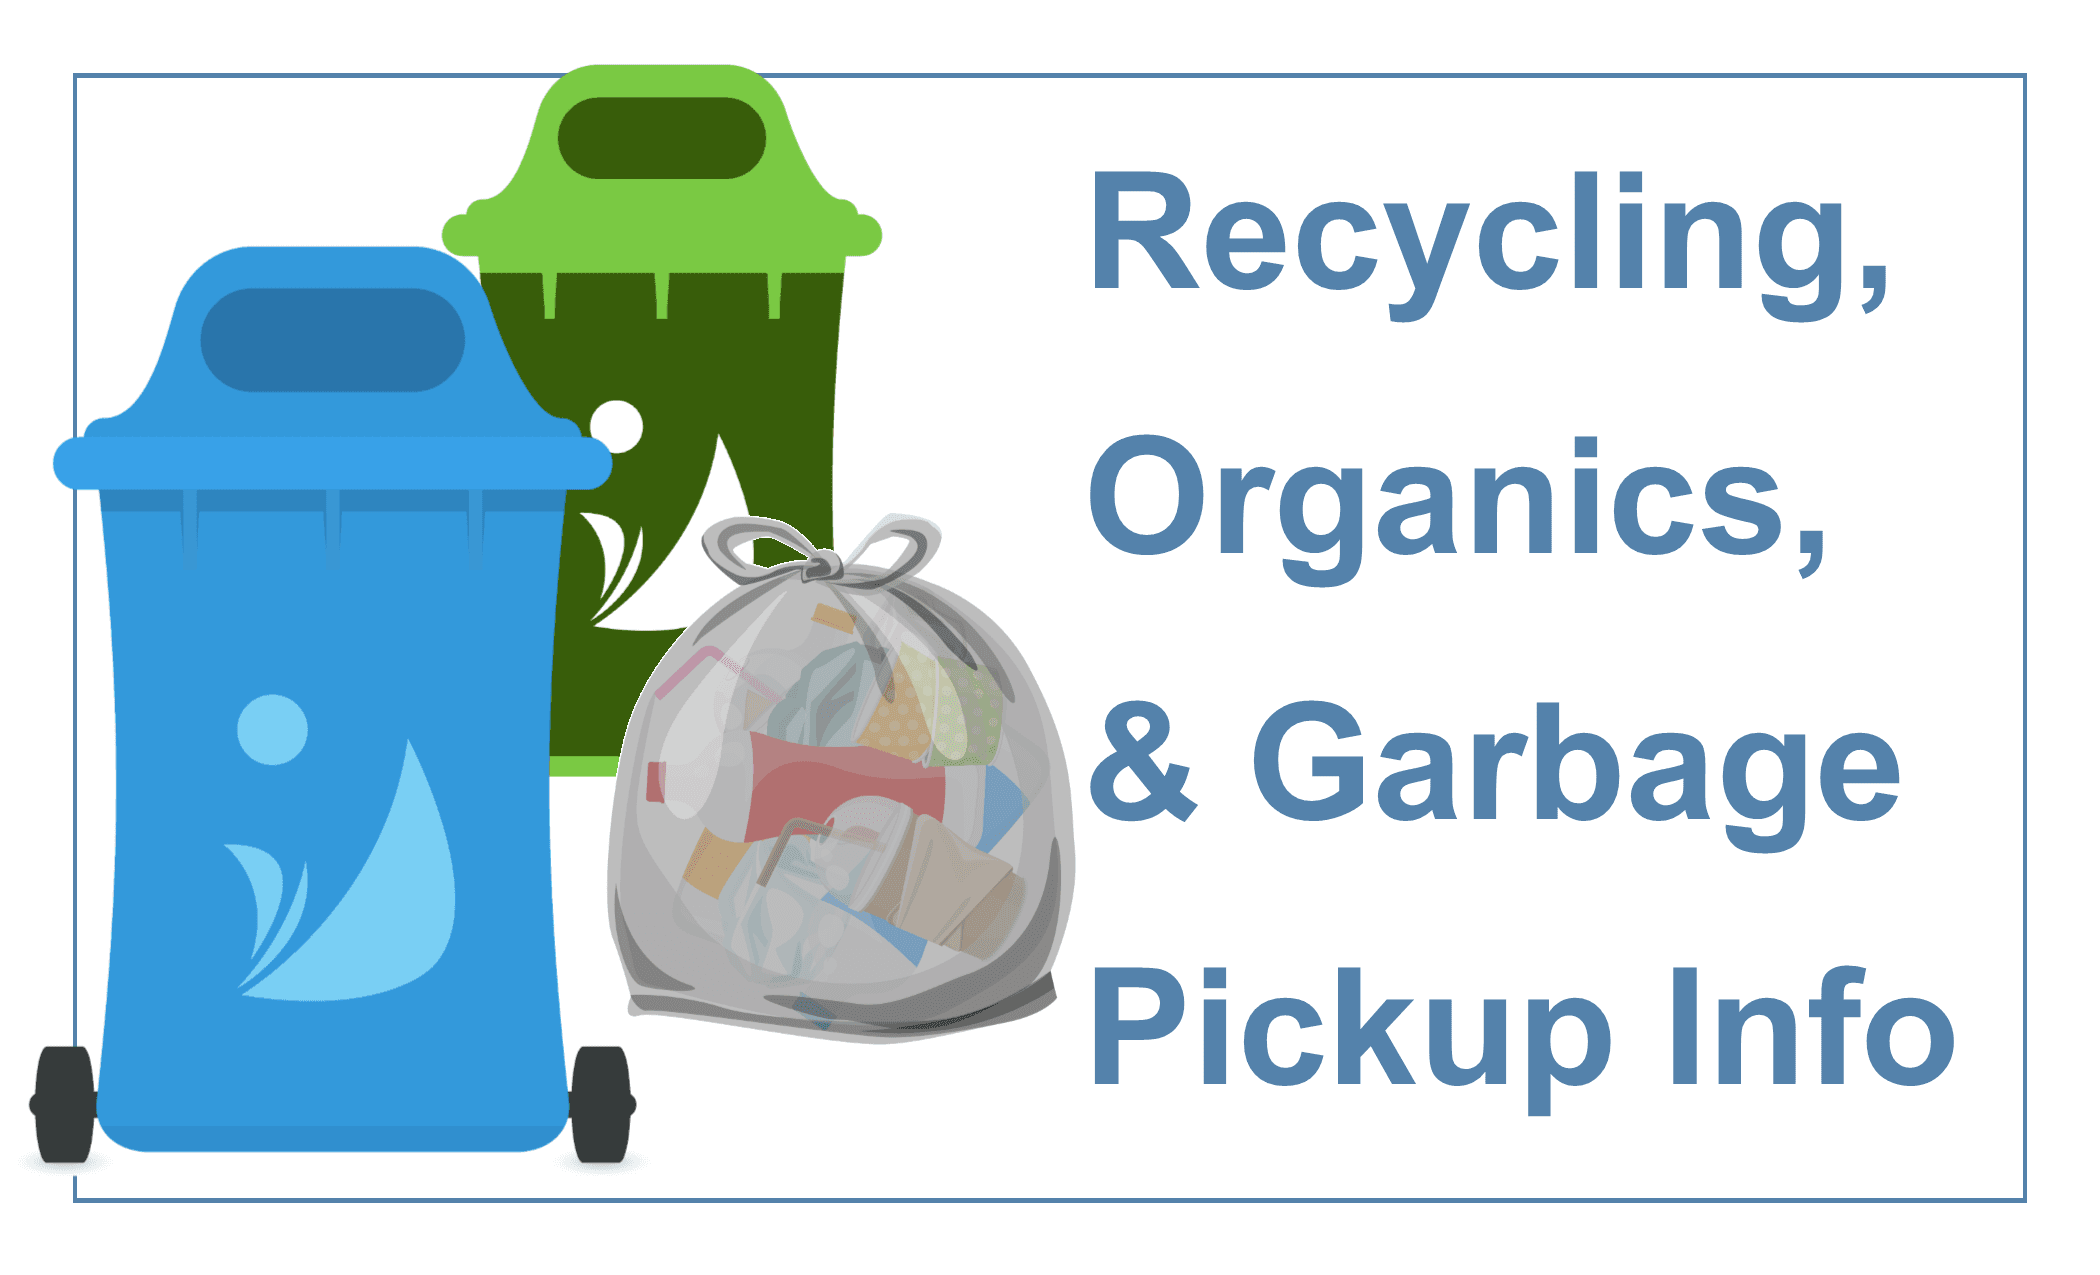 GARBAGE AND RECYCLING HOME PAGE BUTTON